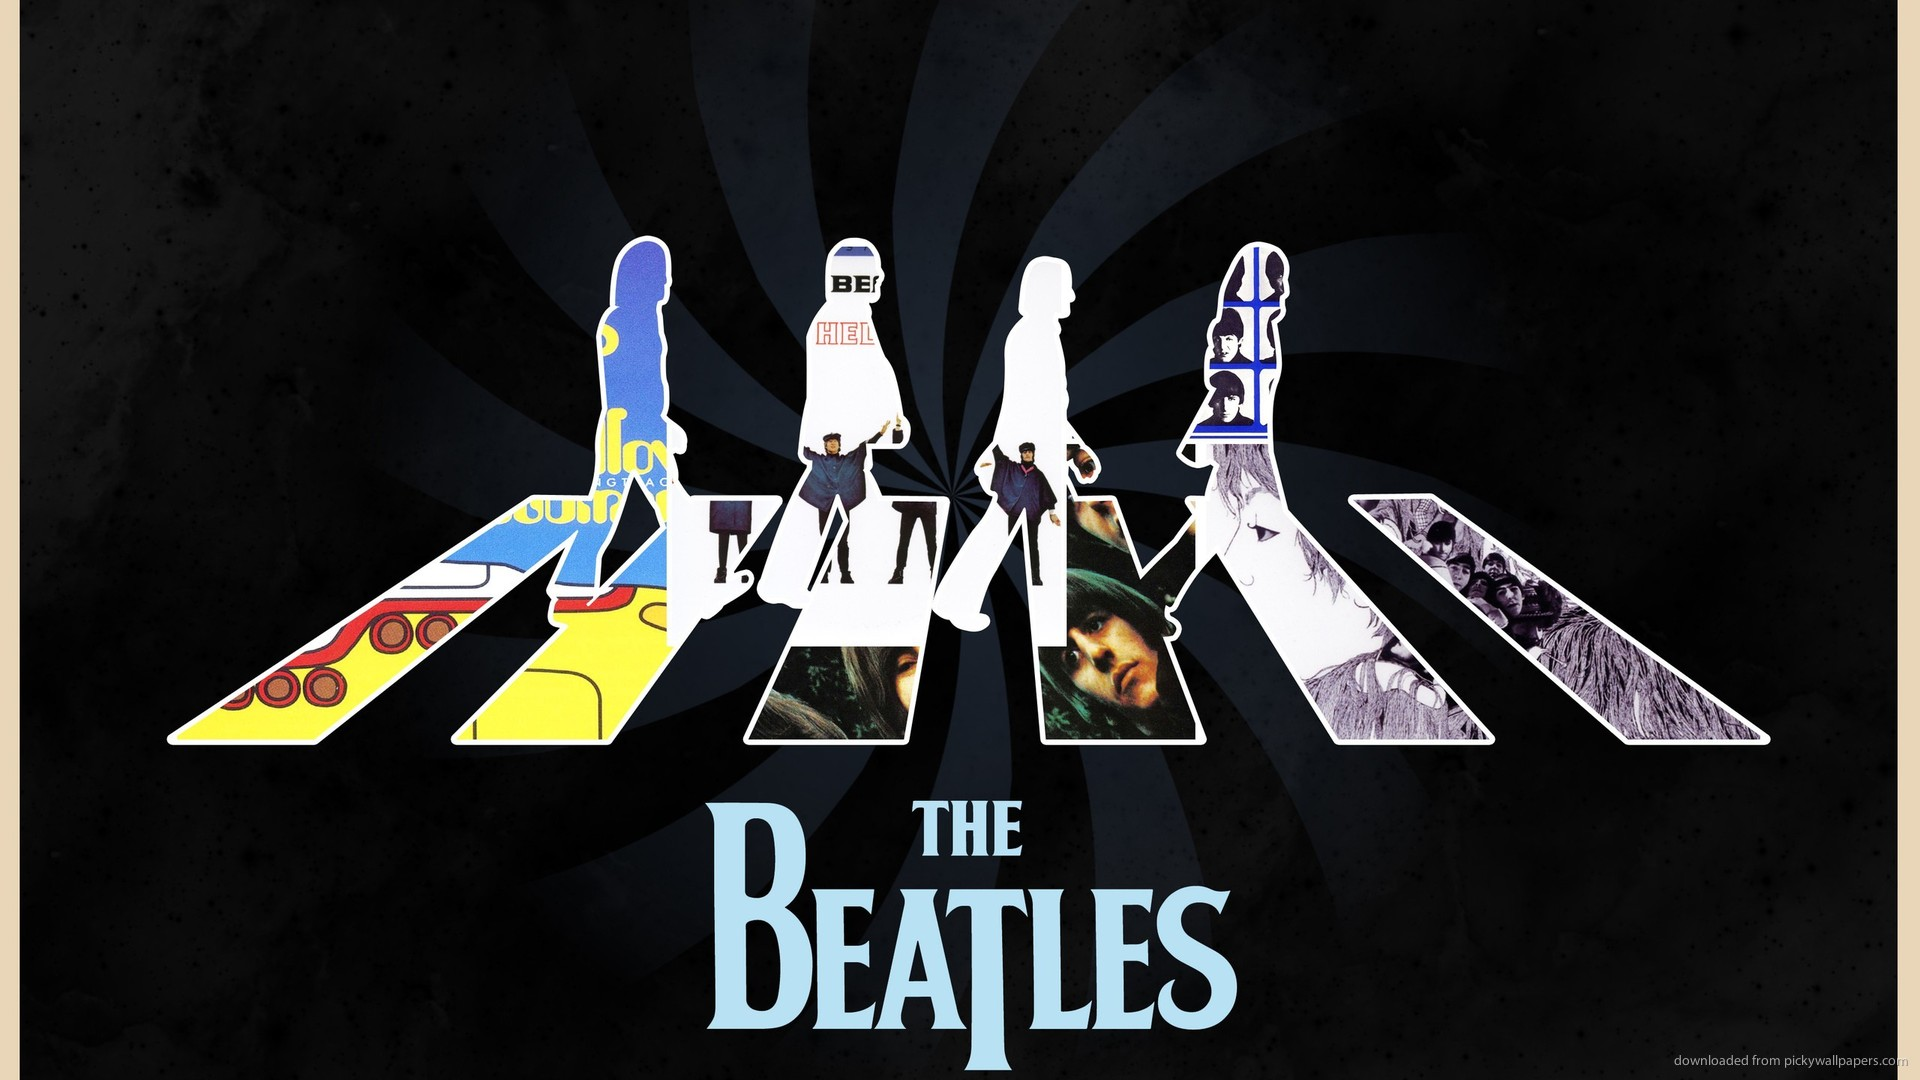 The Beatles Iphone Wallpaper Group 1920x1080